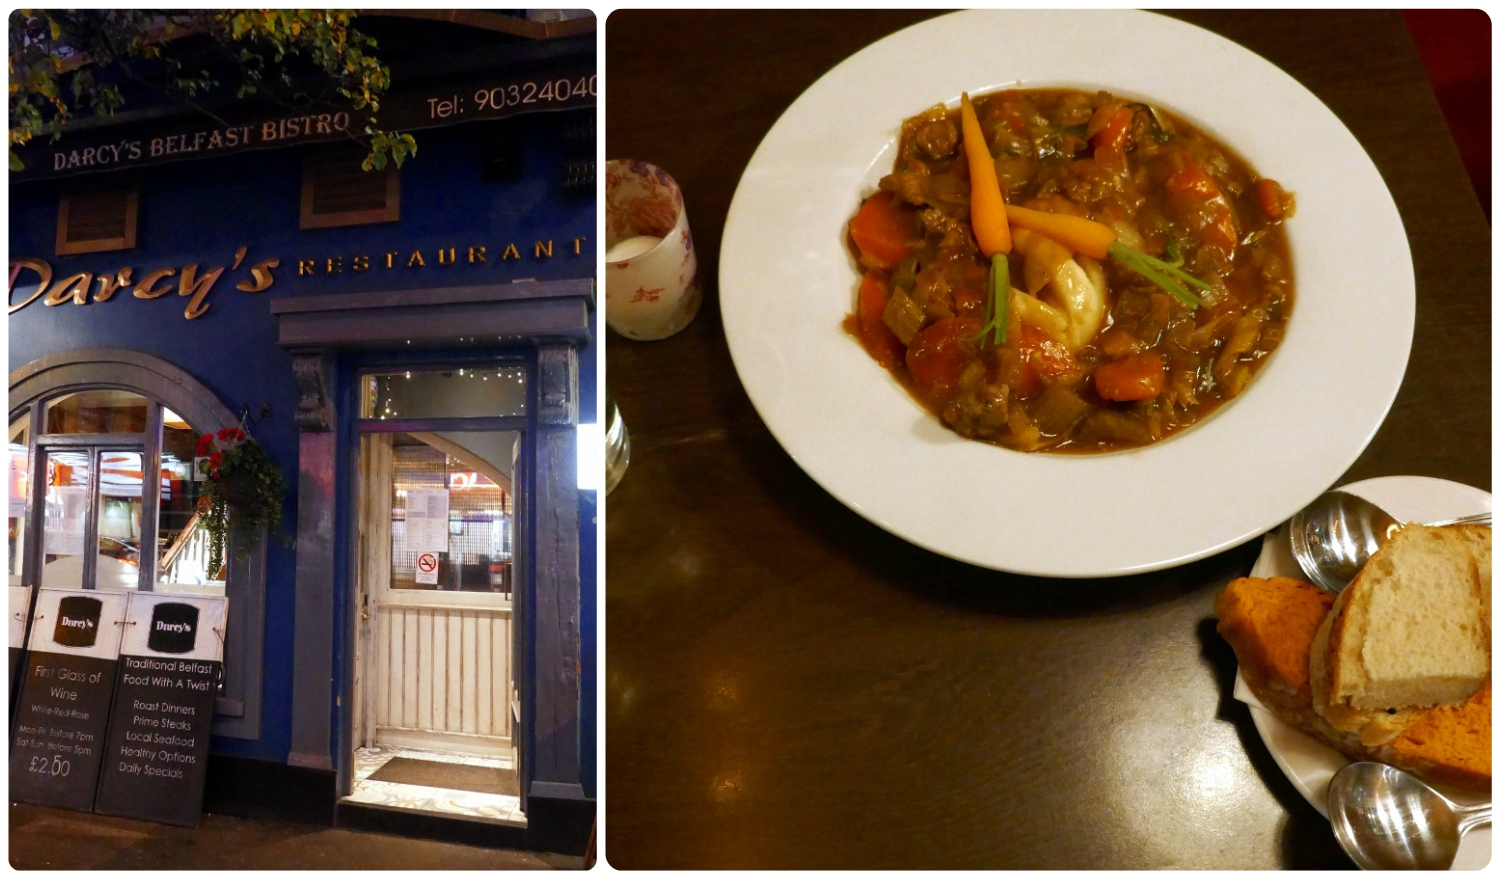 Our Traditional Irish Dinner at Darcy's in Belfast, Northern Ireland.